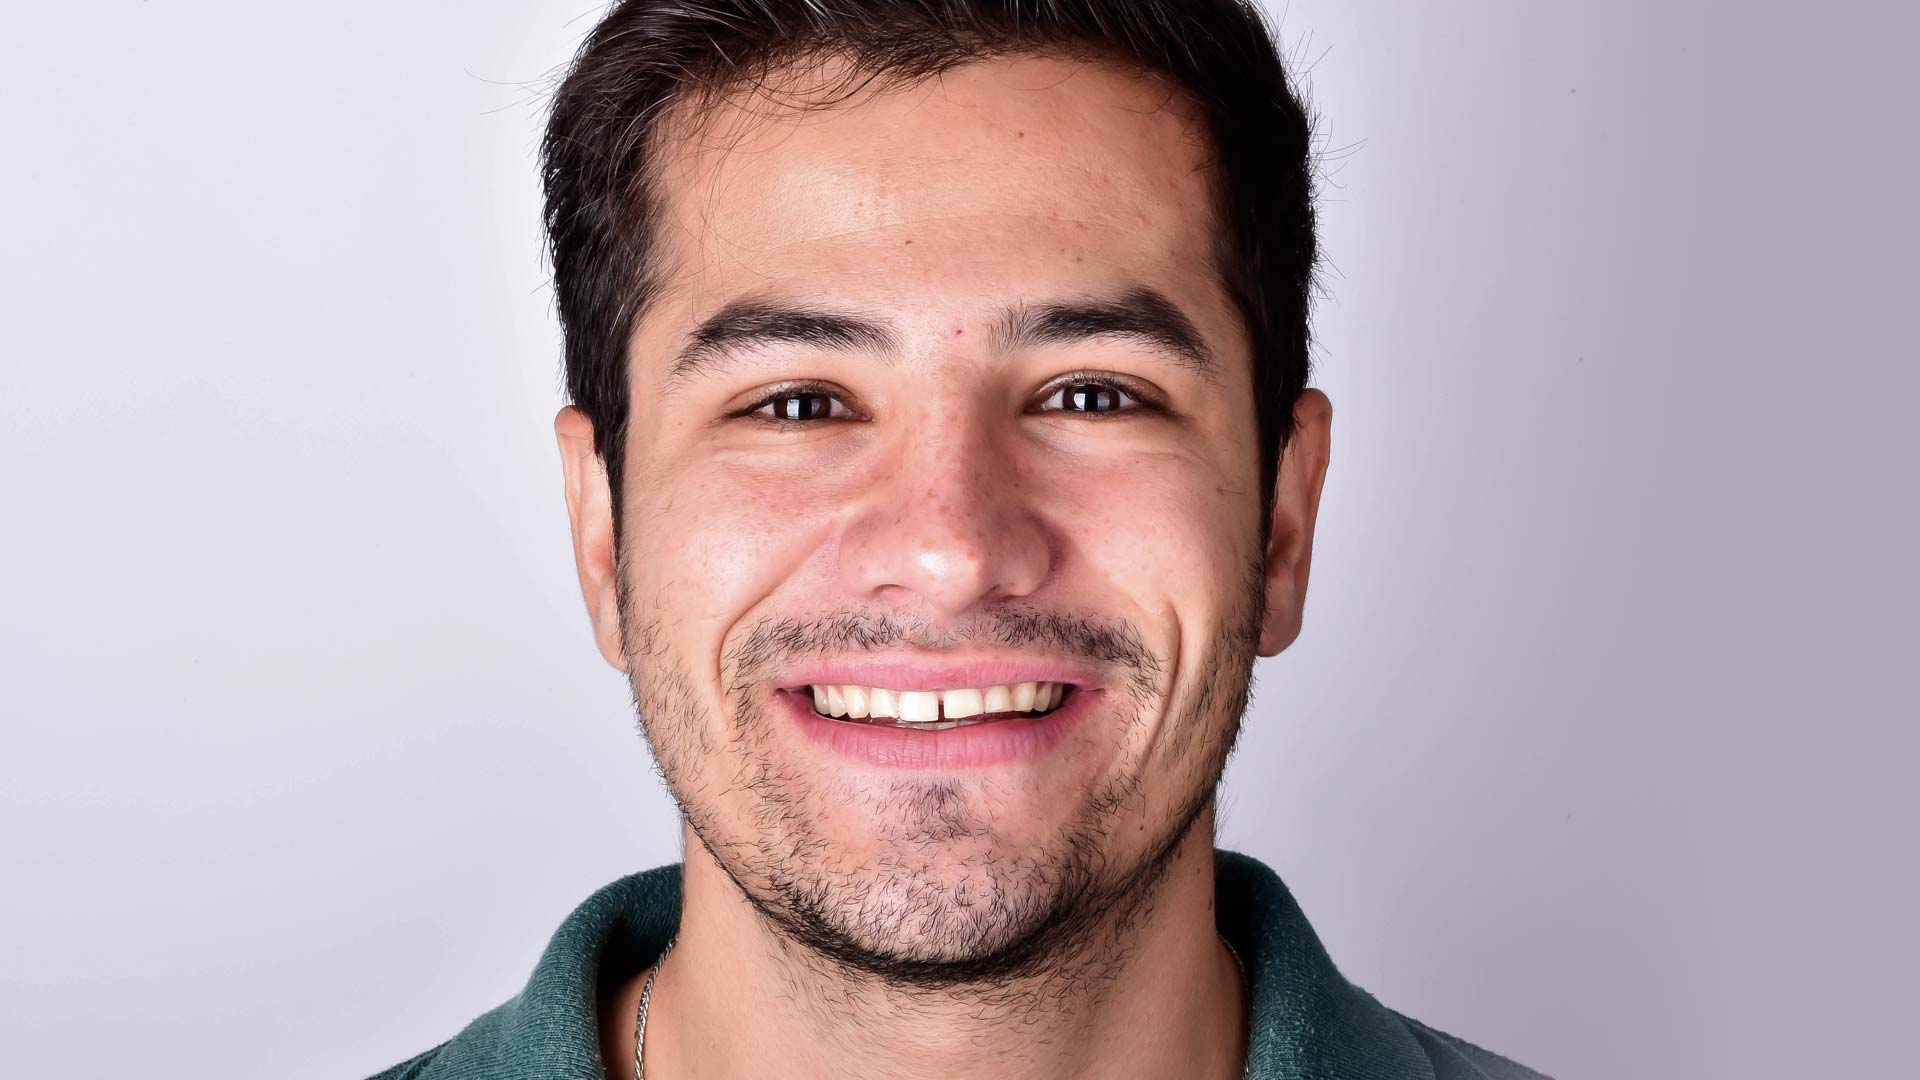 A photo of a man smiling before he has his Digital Smile Design dental treatment